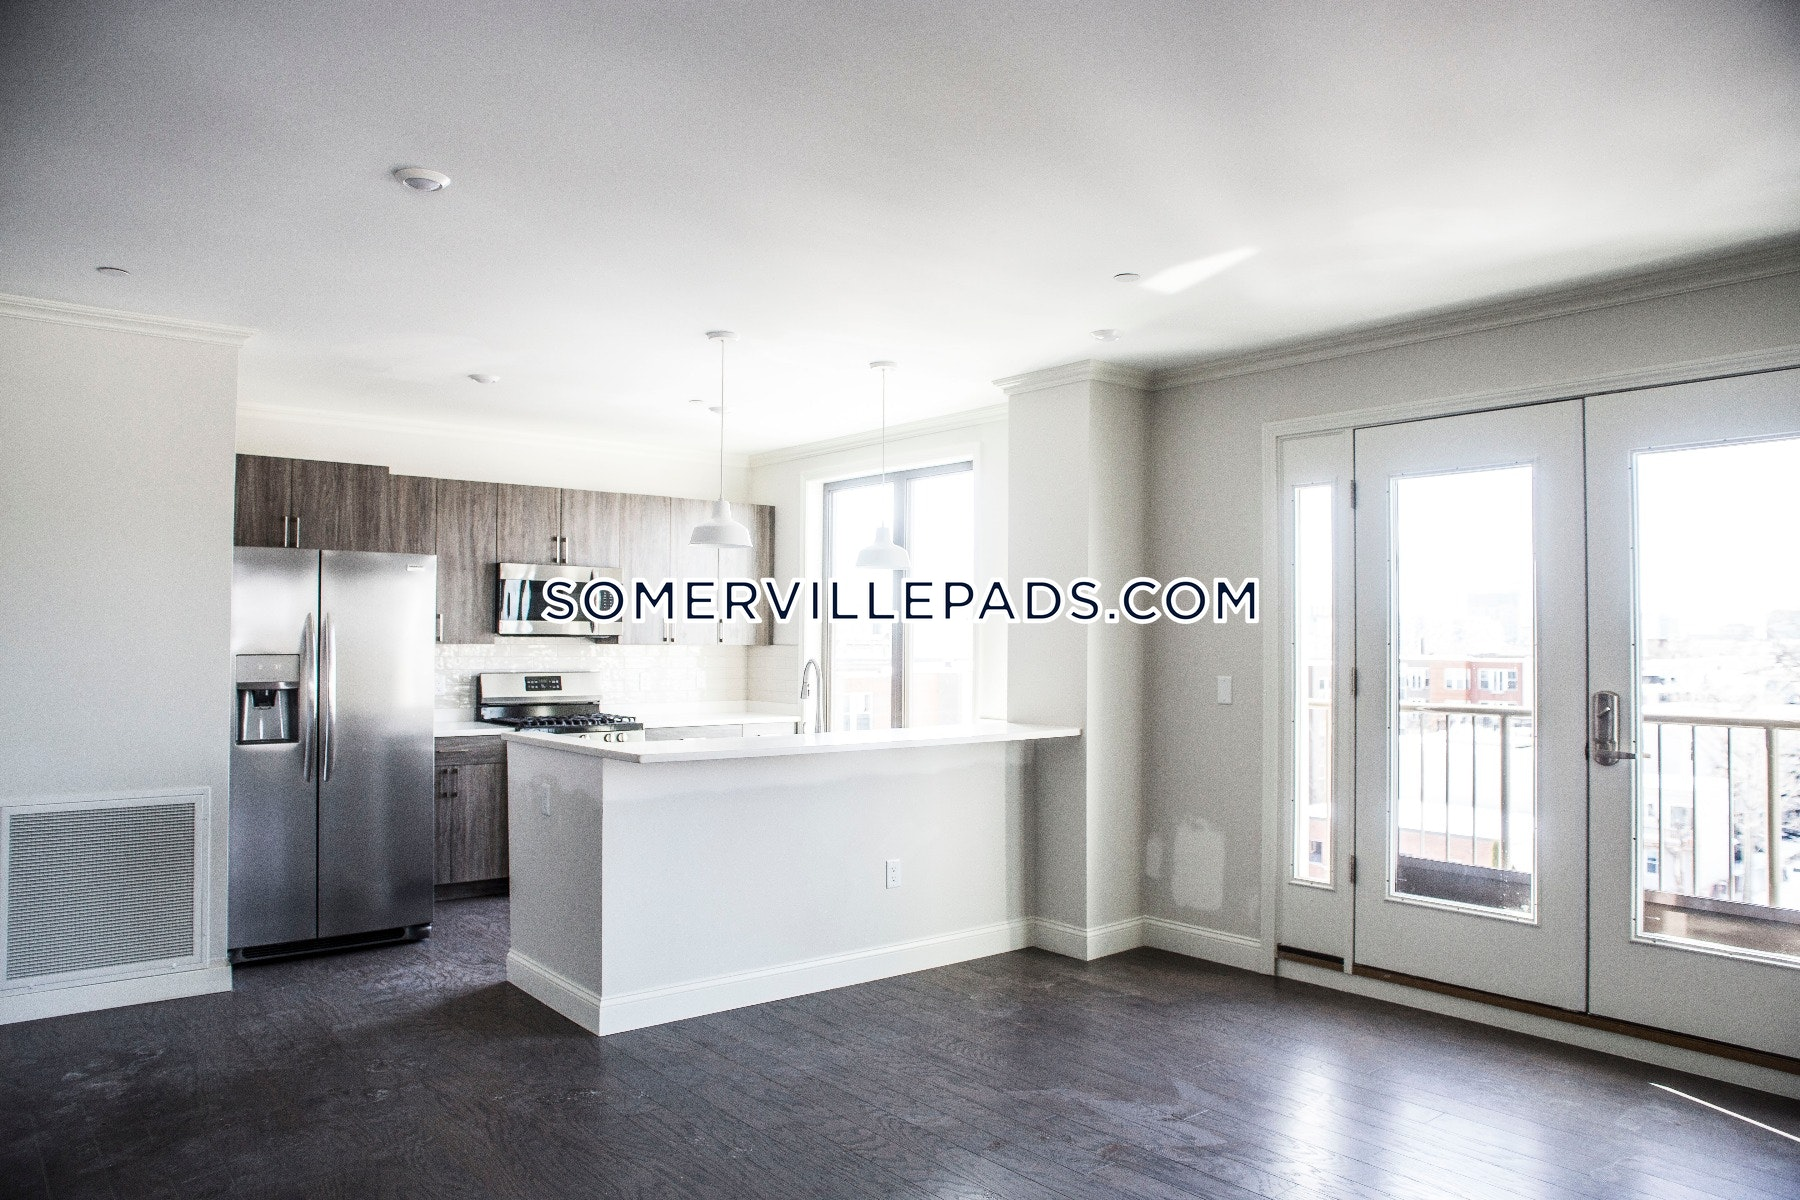 4-beds-2-baths-somerville-east-somerville-4800-454312